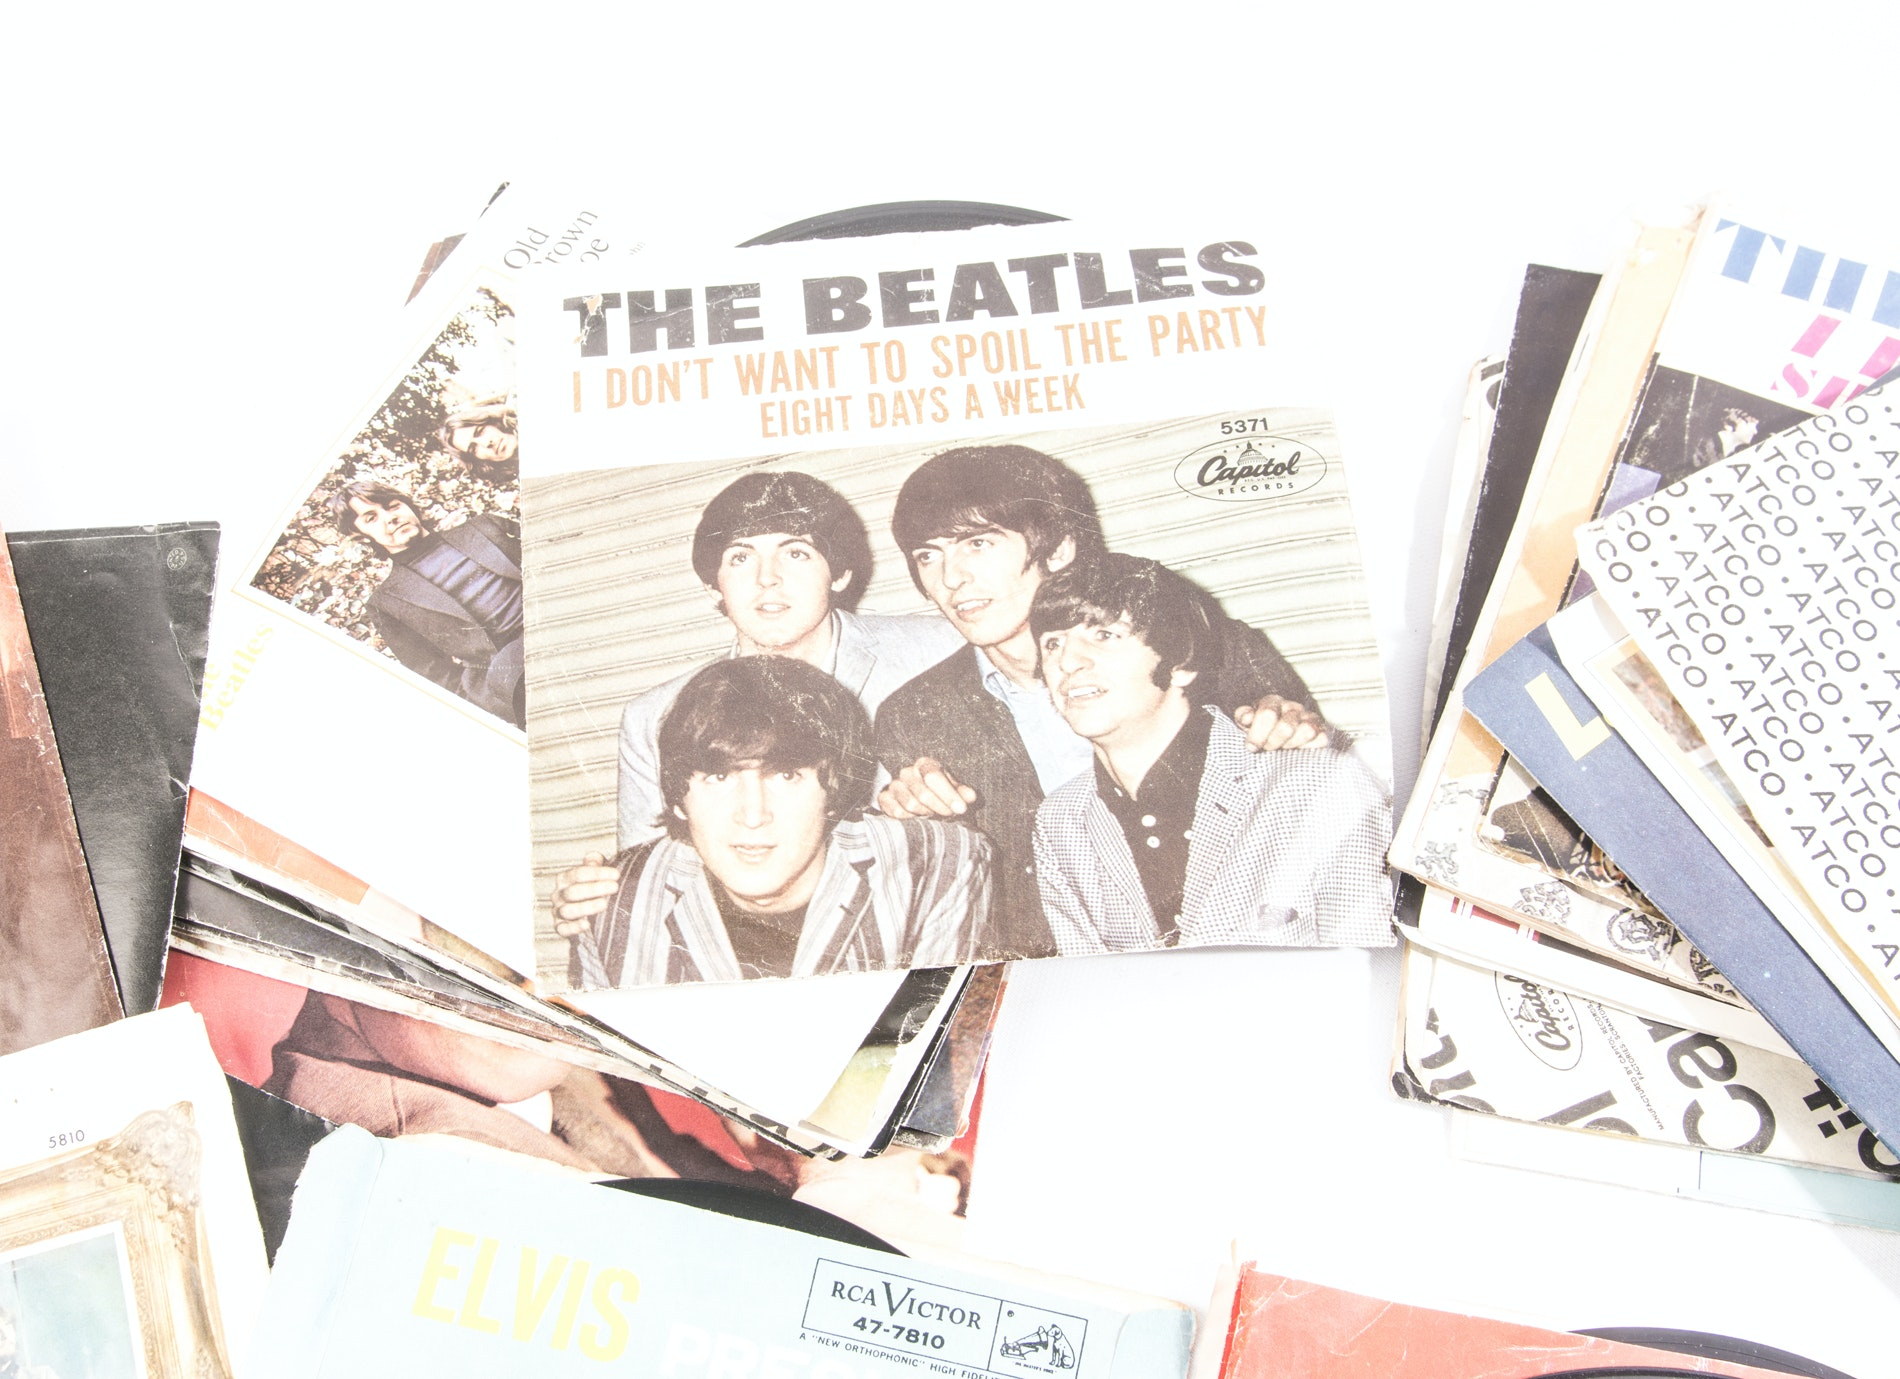 Vintage Collection of Vinyl 45 Records and Beatles Paraphernalia